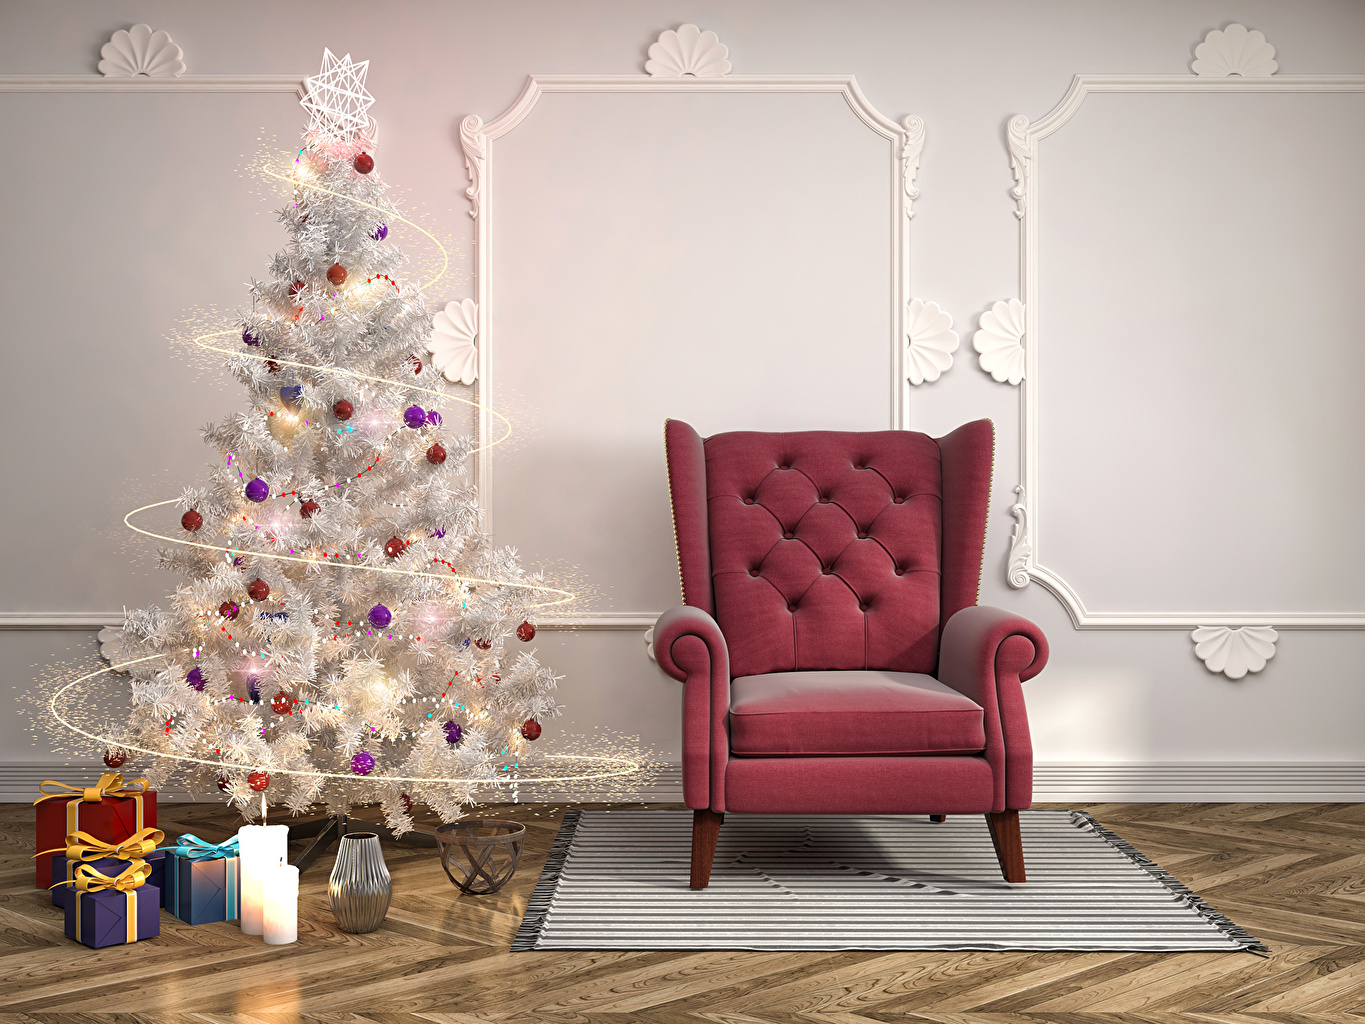 Desktop Wallpapers New year 3D Graphics Christmas tree Gifts Interior Wall Balls Wing chair Holidays Christmas New Year tree present walls Armchair